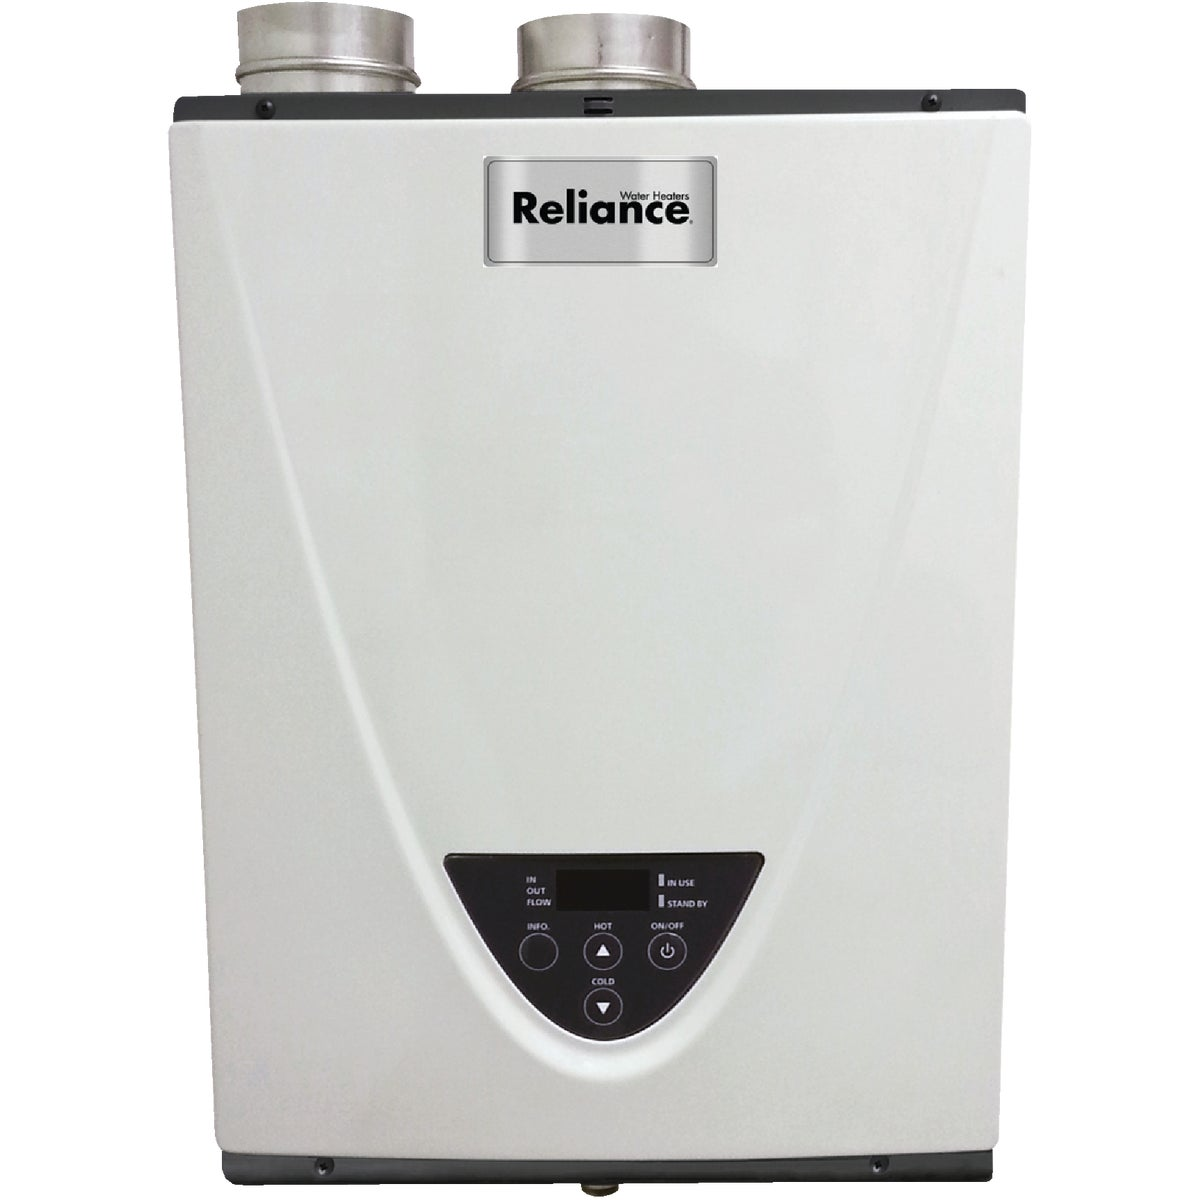 TNKLS LP WATER HEATER - TS-340-LIH by Reliance Added Sales